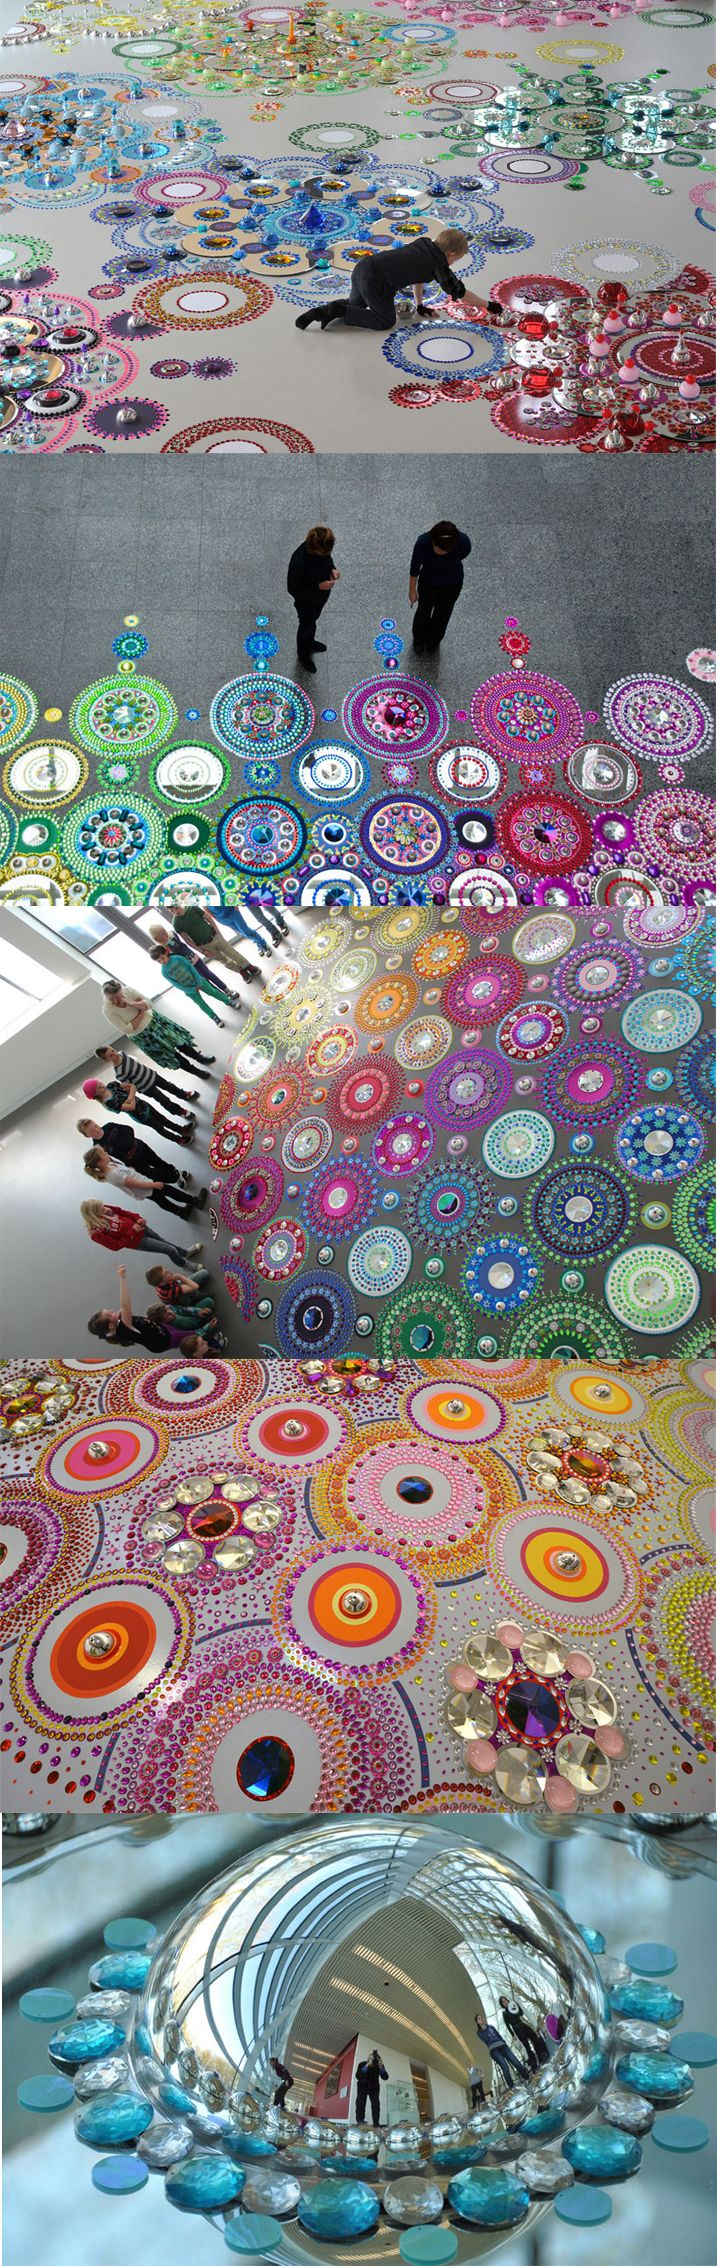 suzan drummen: kaleidoscopic crystal floor installations #art #installation